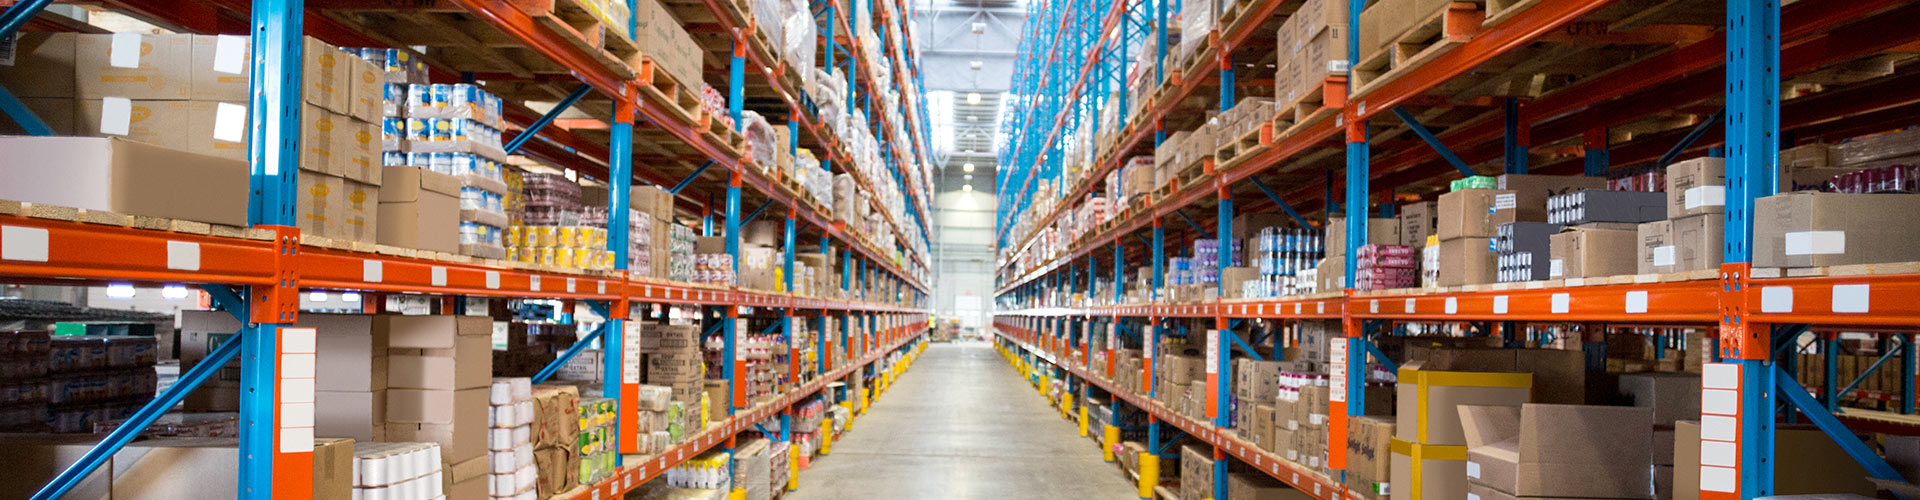 Learn from the present, build for the future: What's your warehouse and supply chain strategy?